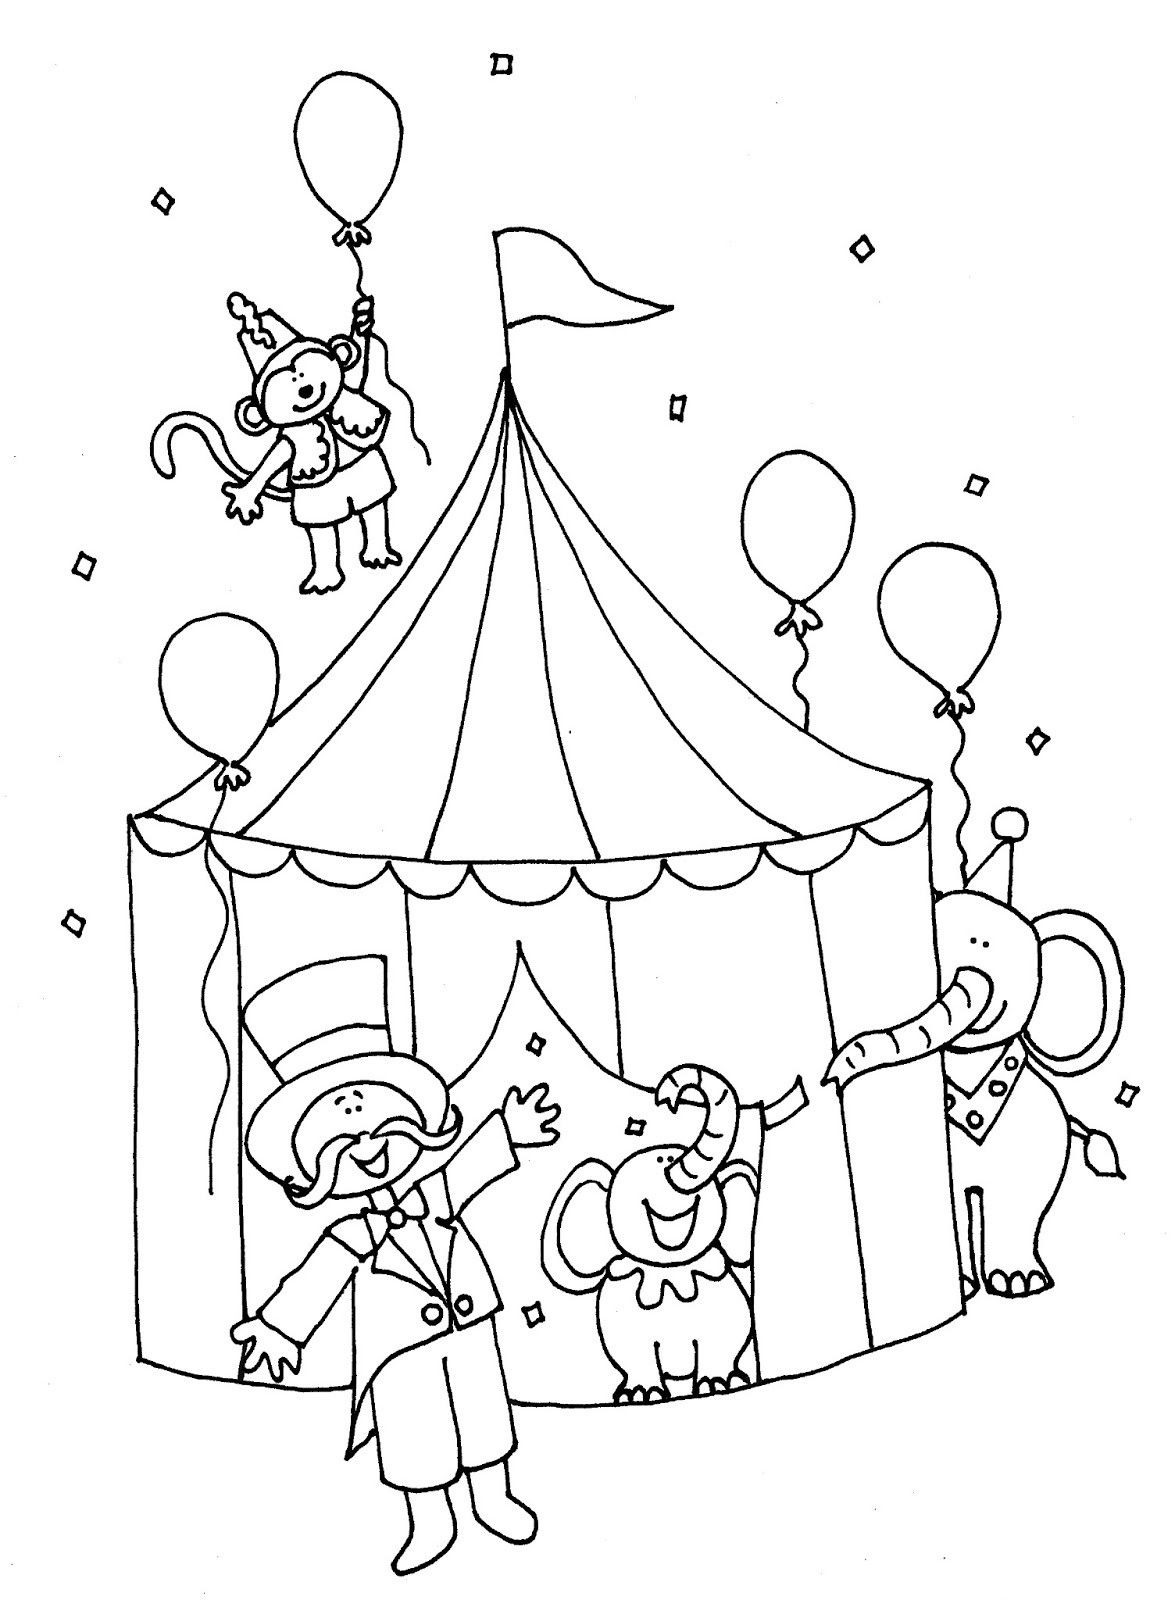 Carnival Coloring Pages Best Of Printable Circus Extraordinary Acpra Inside Circus Theme Crafts Circus Crafts Coloring Pages